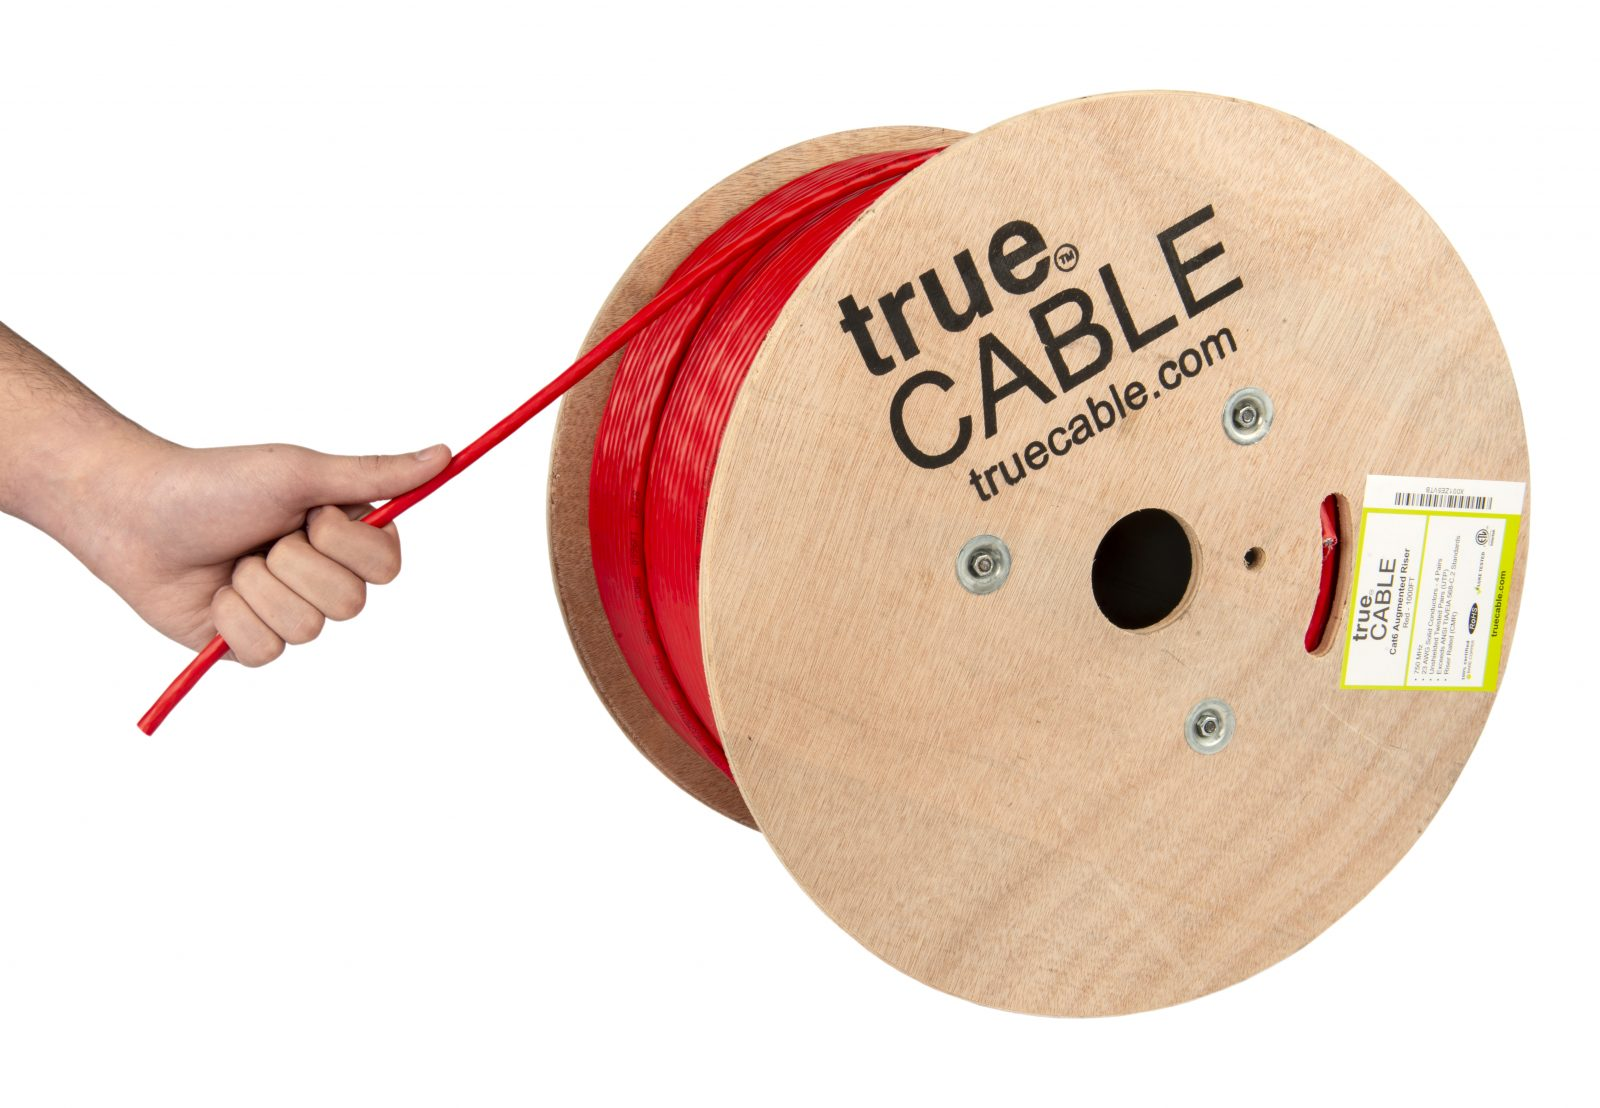 True Cable red cable reel being pulled photographed by Robintek Photography